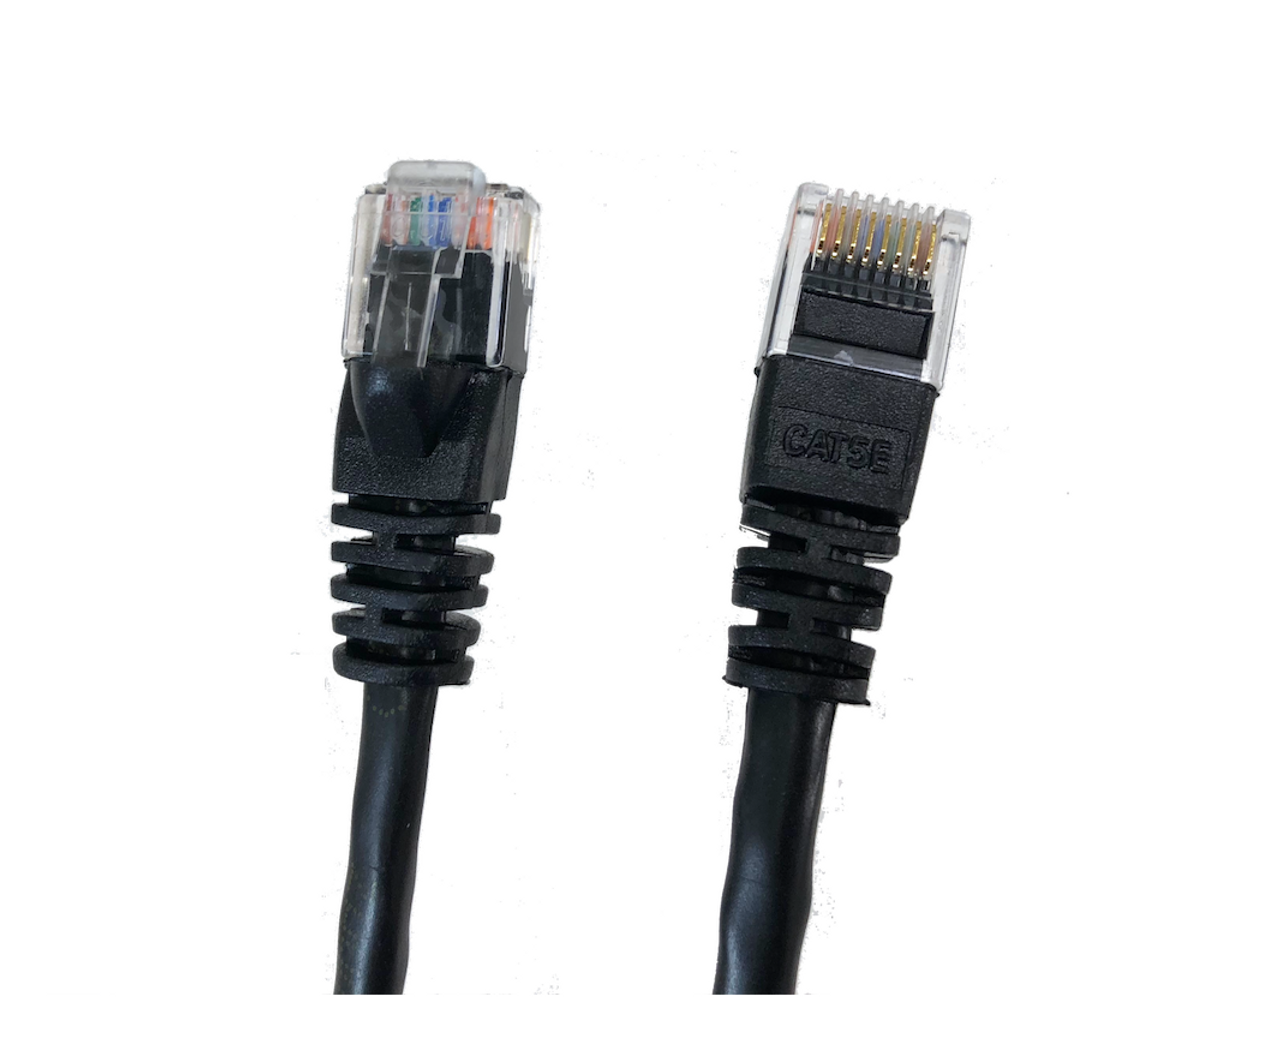 Category 5E UTP RJ45 Patch Cable Black - 50 ft